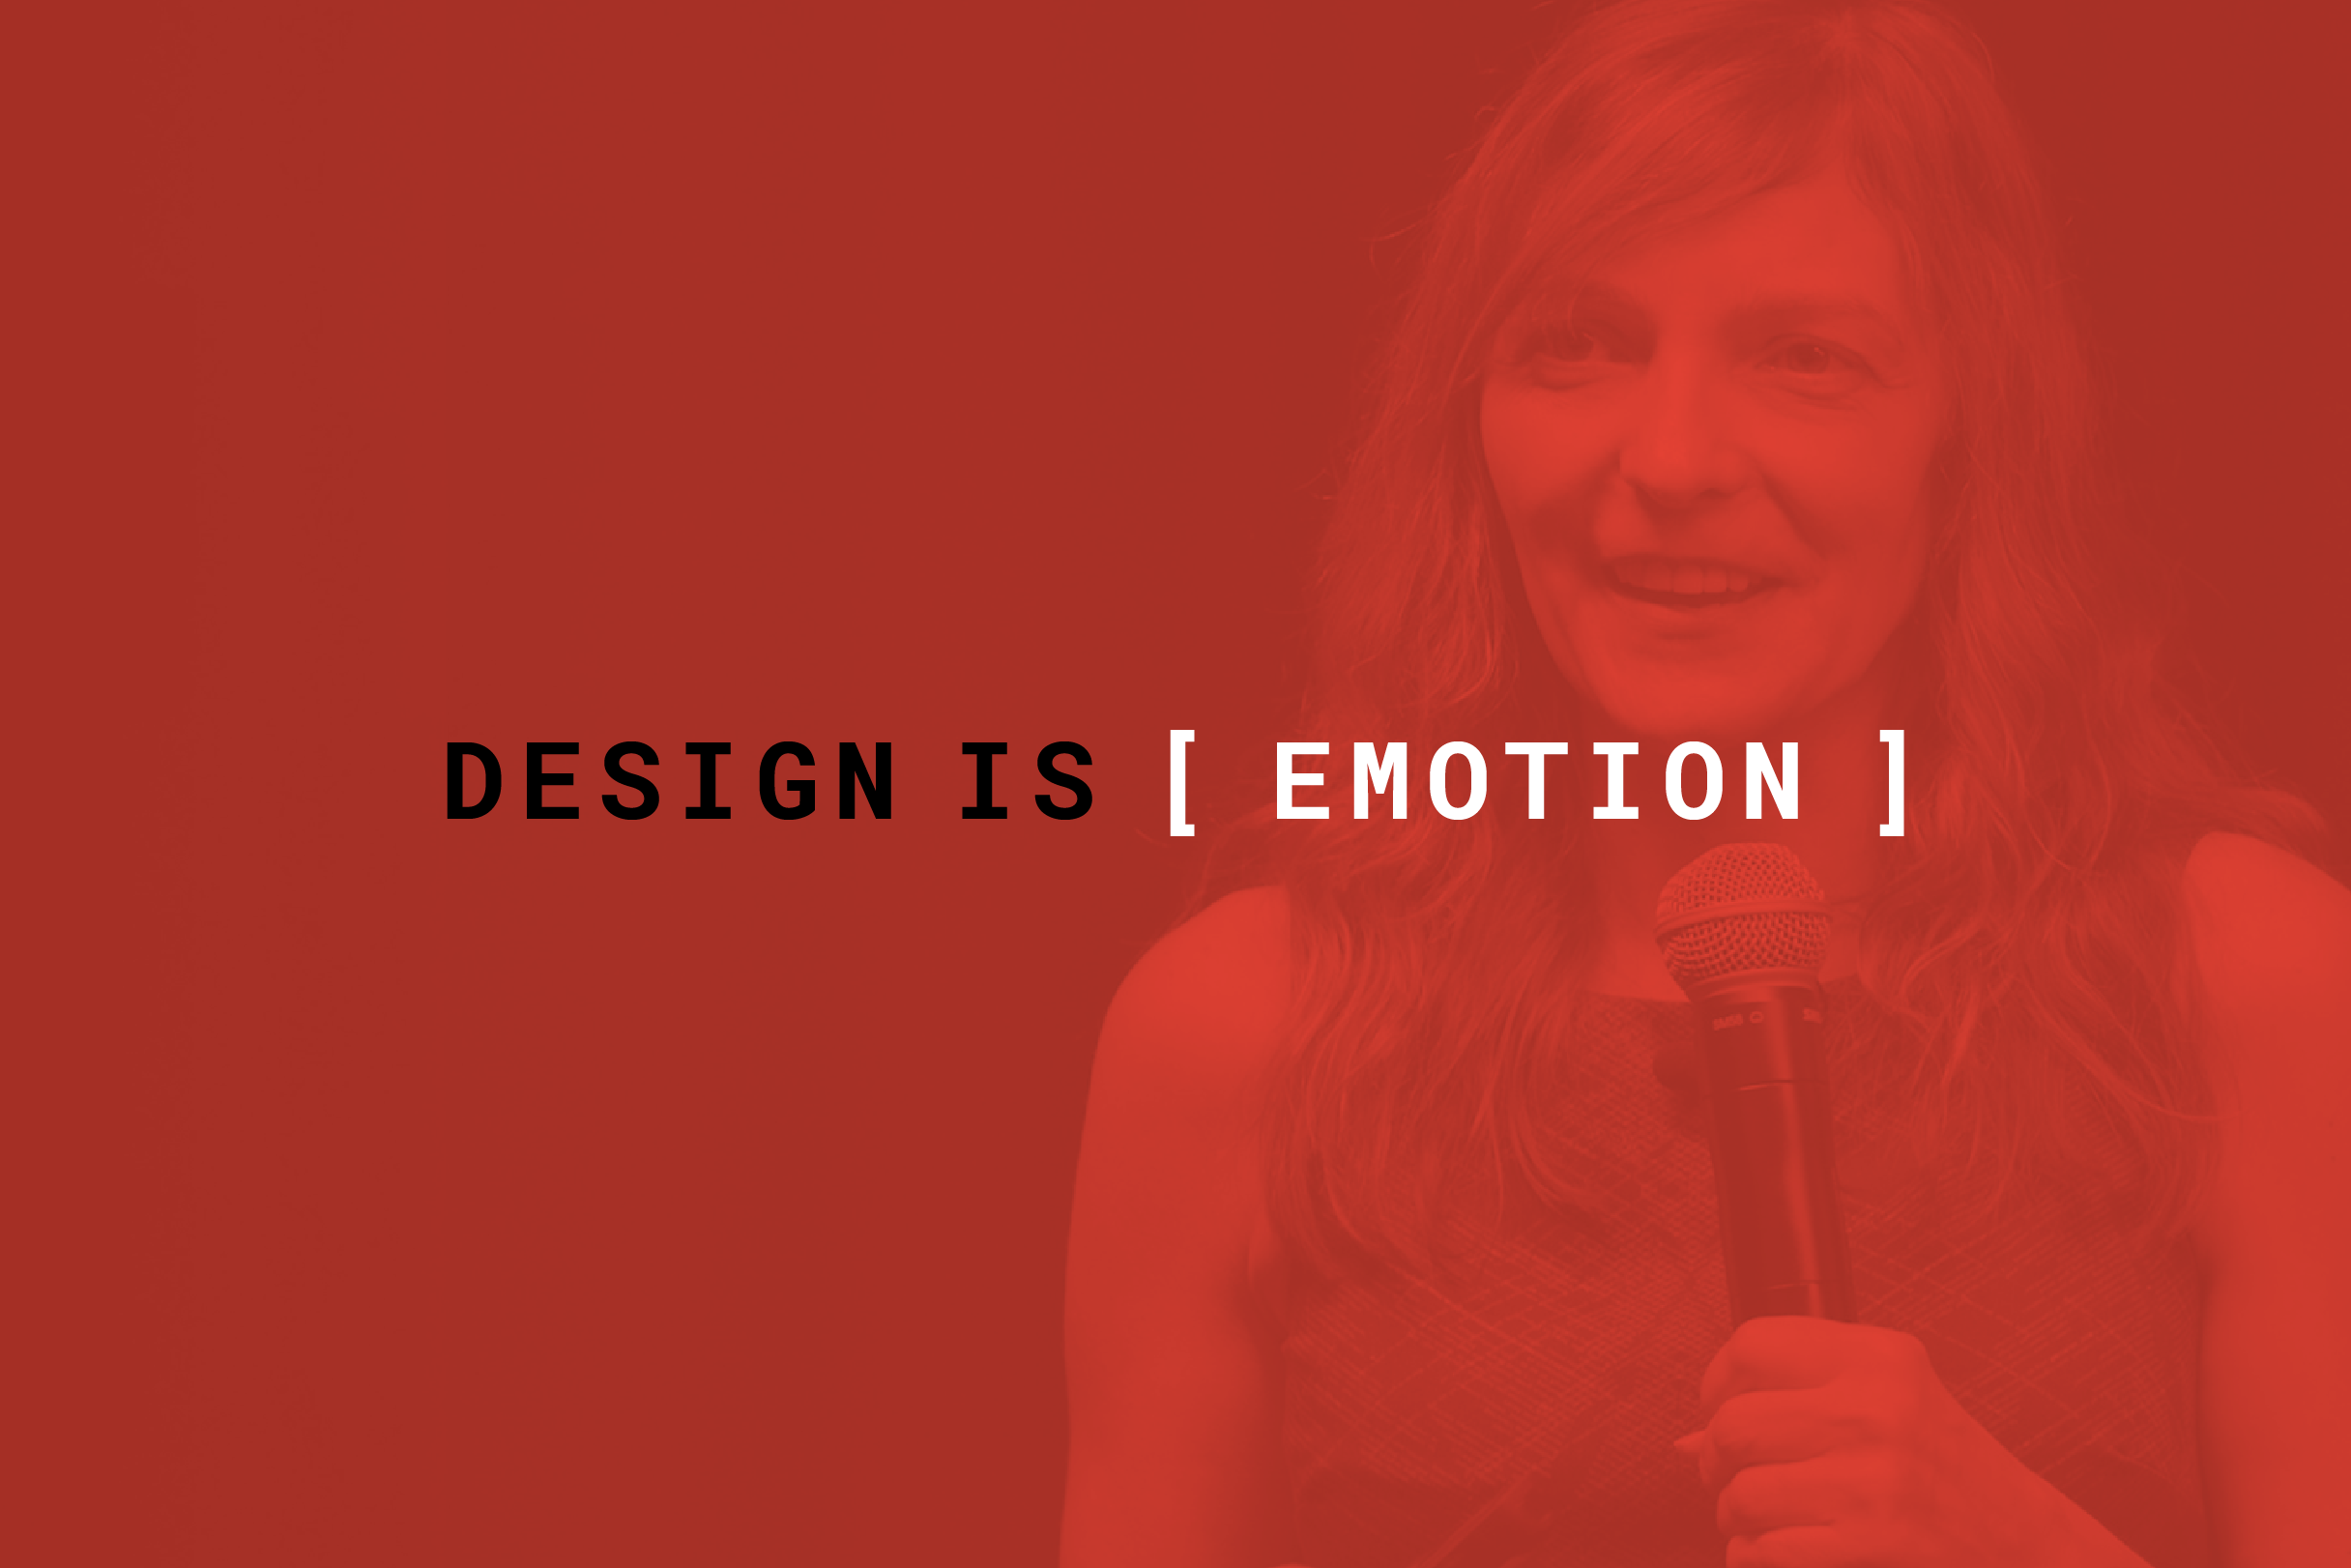 design_is_emotion_3x2.png